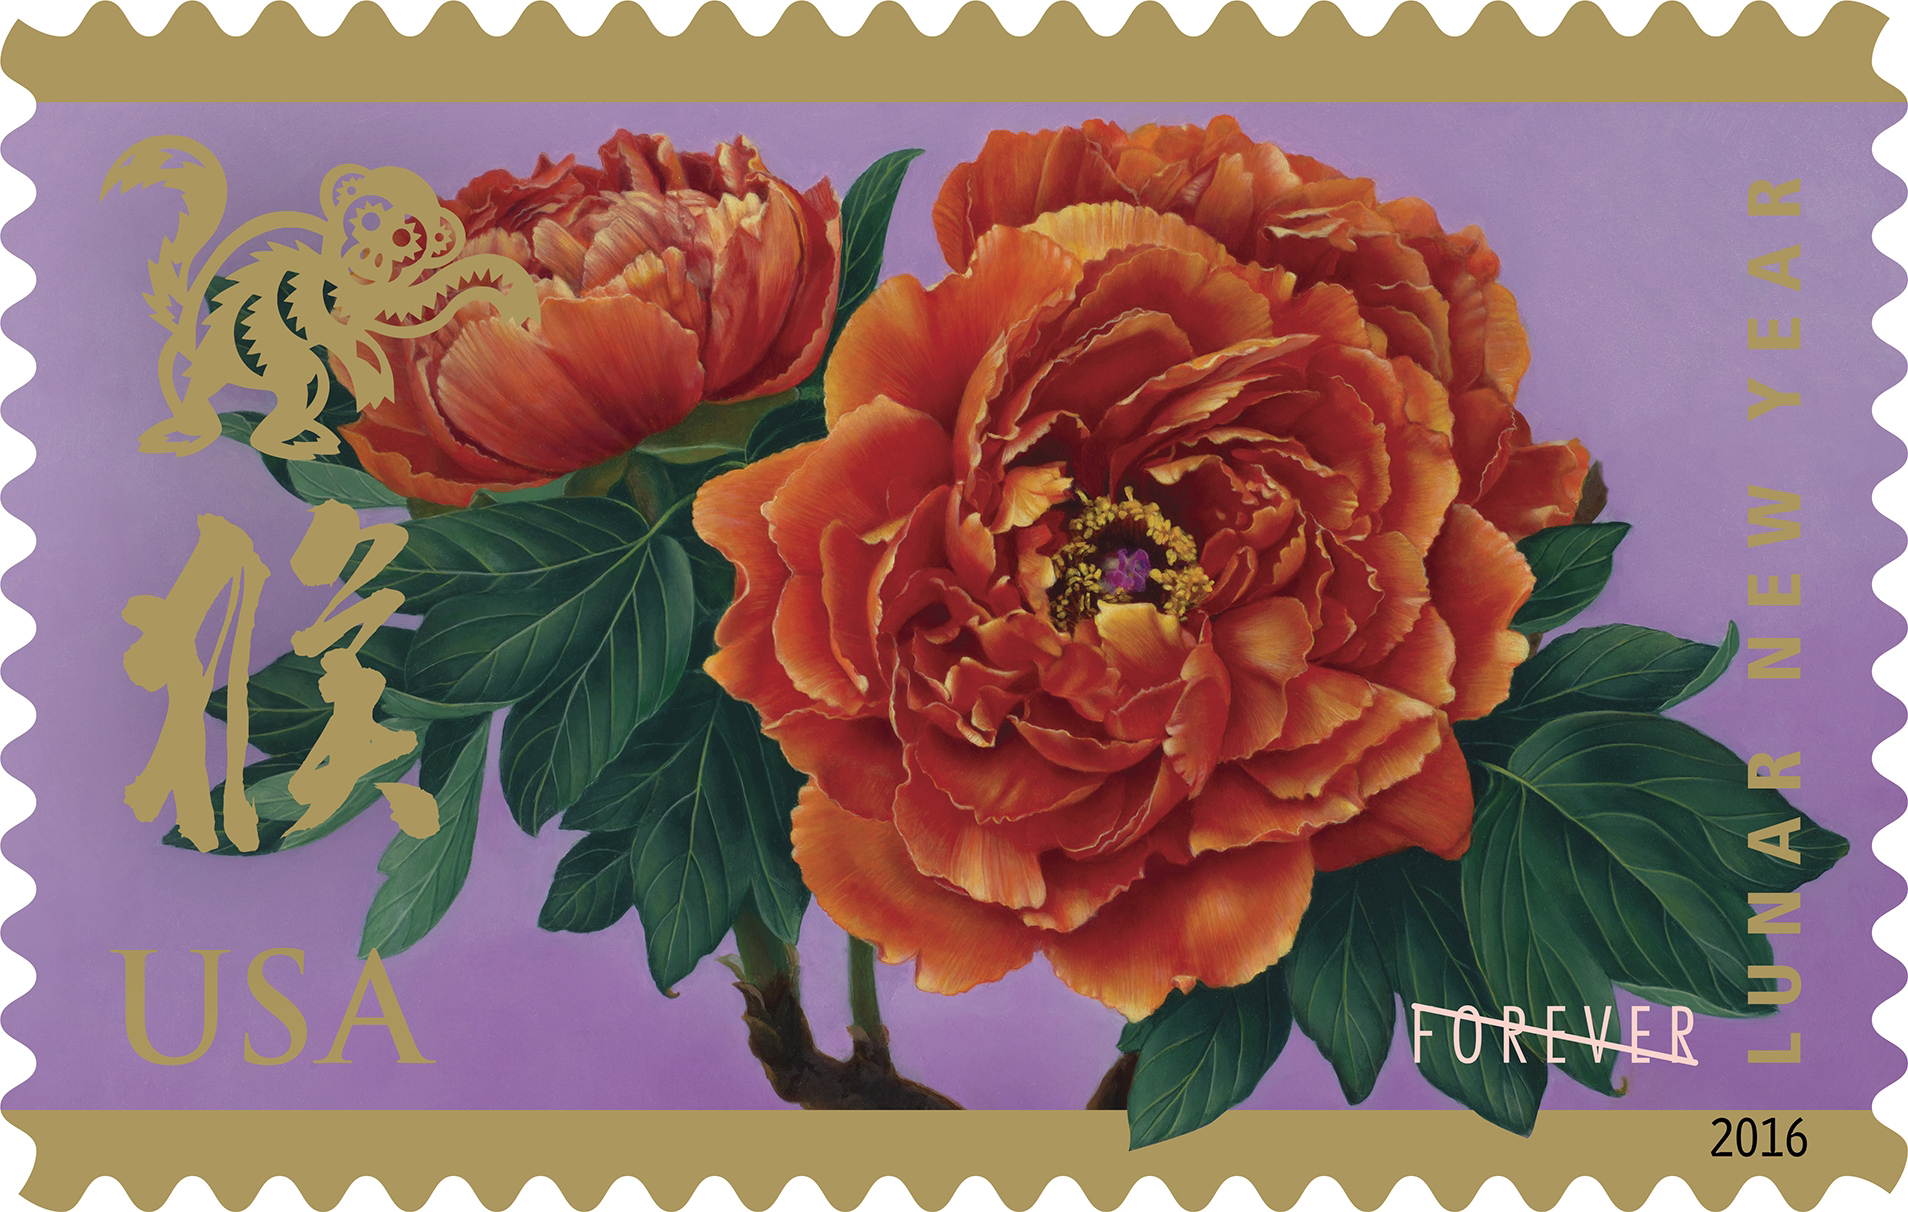 year-of-the-monkey-usps-forever-stamp-2016 - Asia Trend